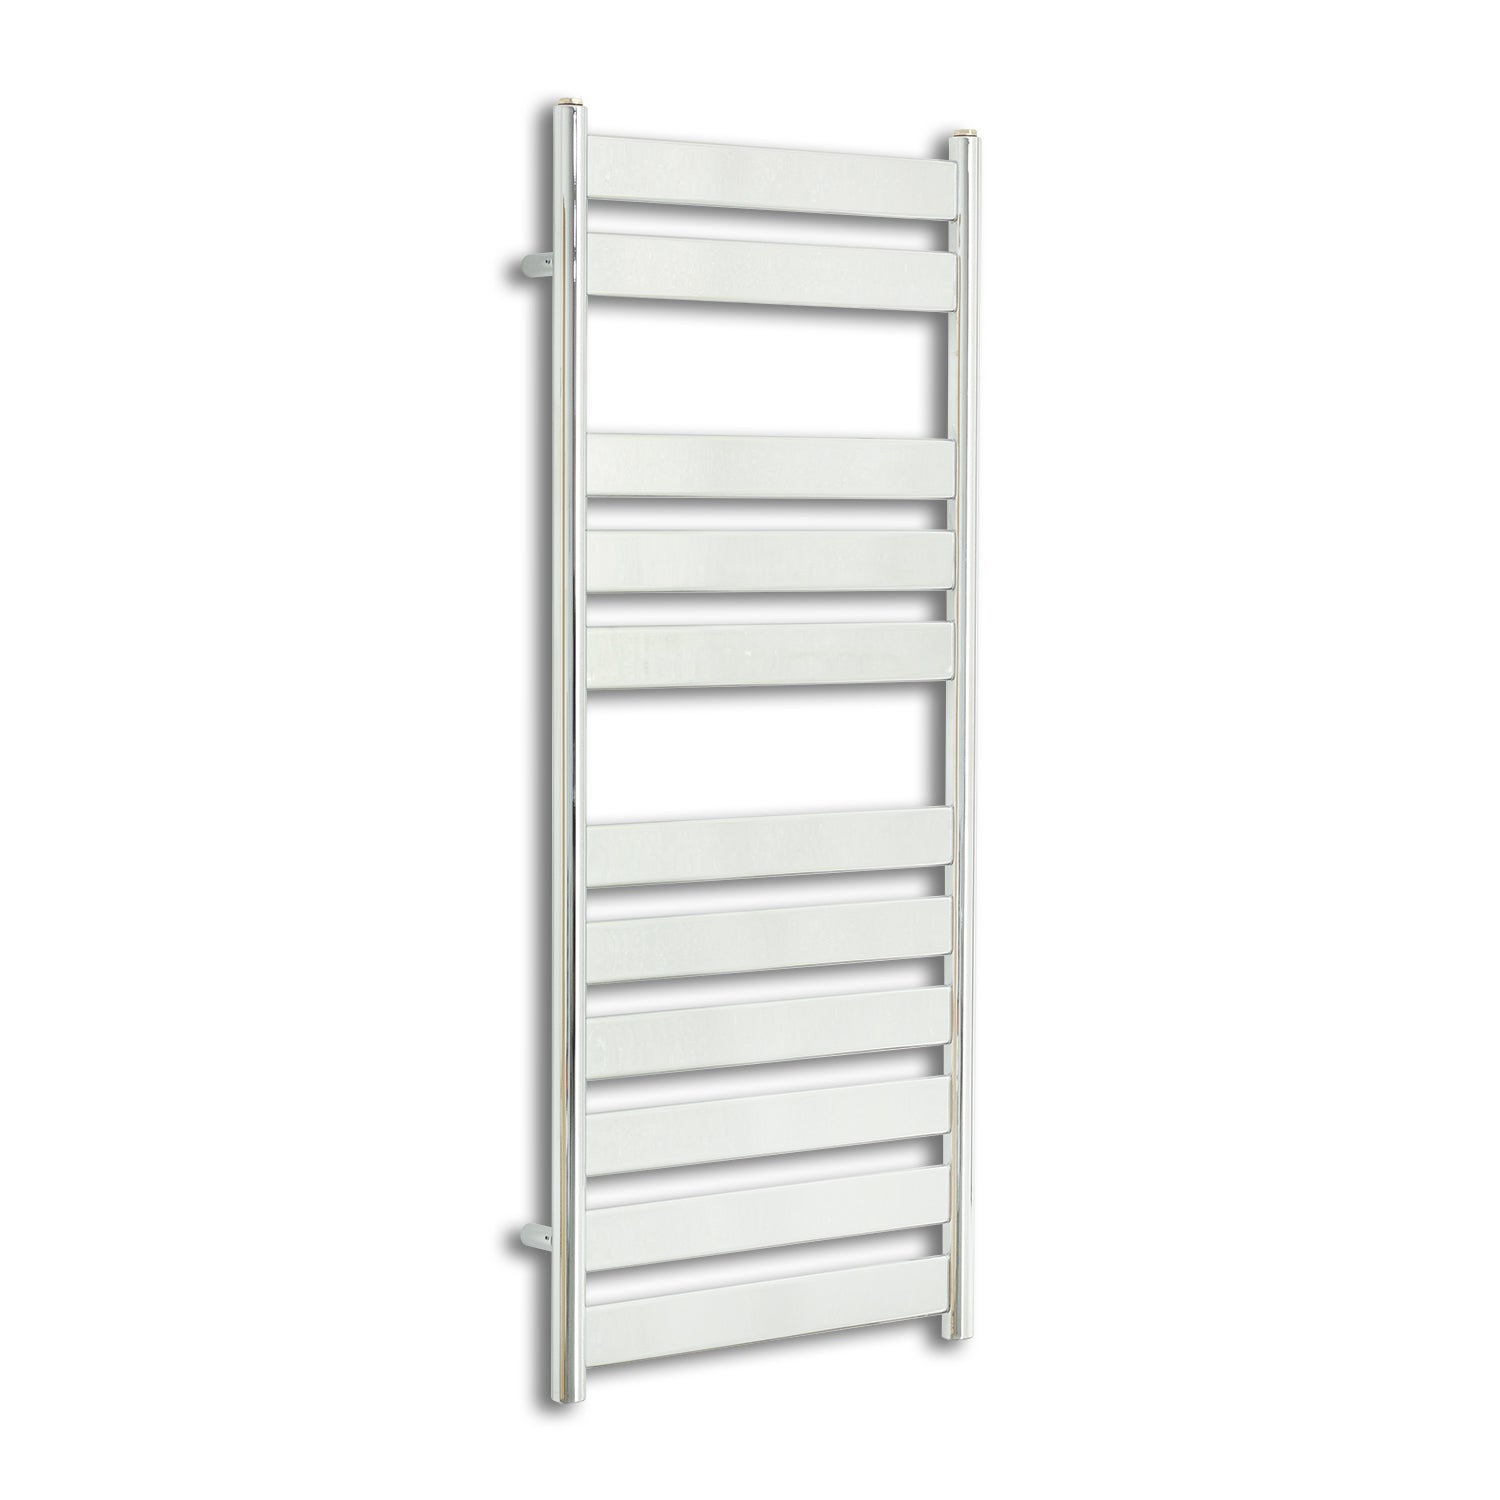 500mm Wide 1200mm High Chrome Towel Rail Radiator